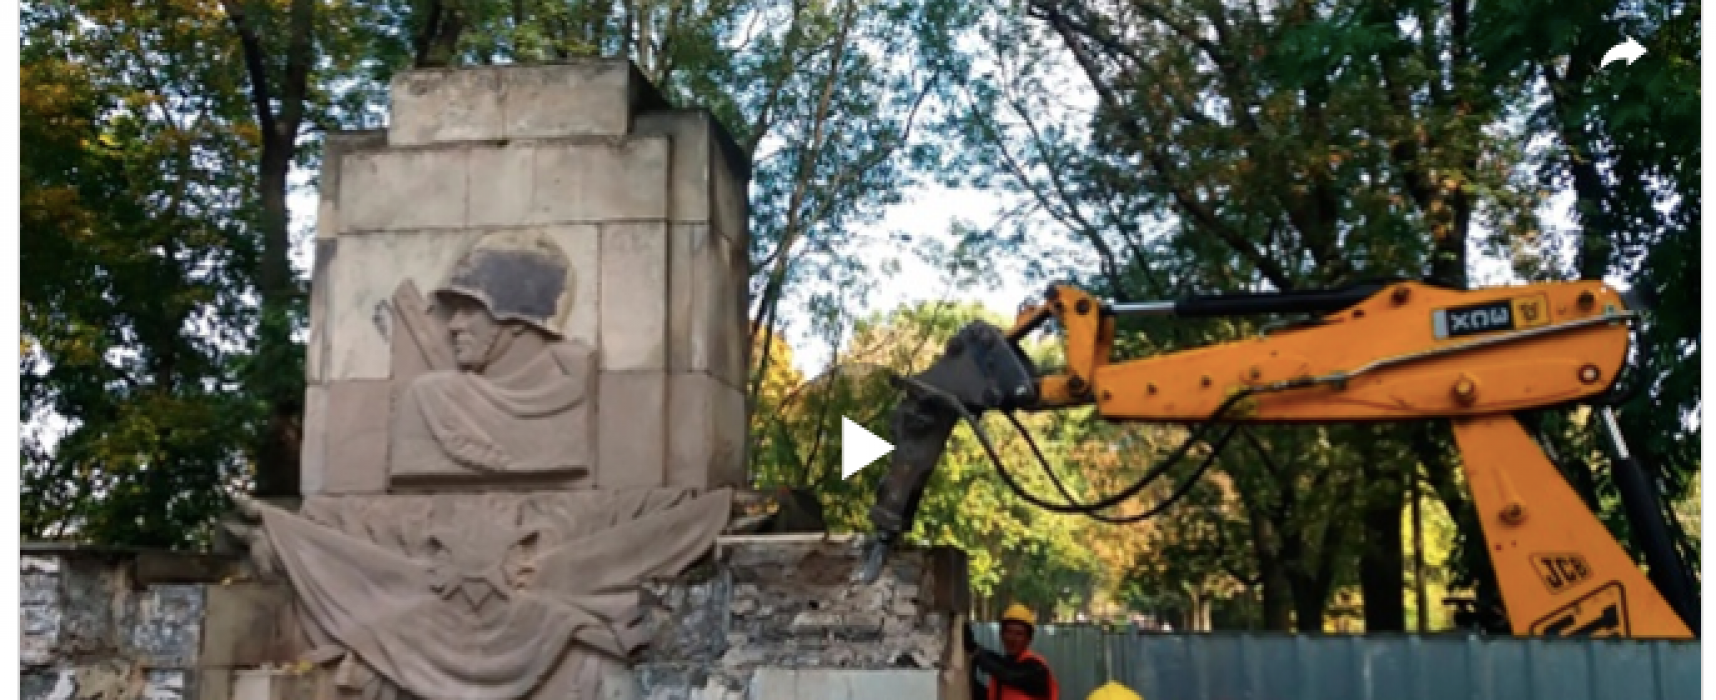 Fake: Ukraine Demolishing and Desecrating Red Army Soldiers Monuments